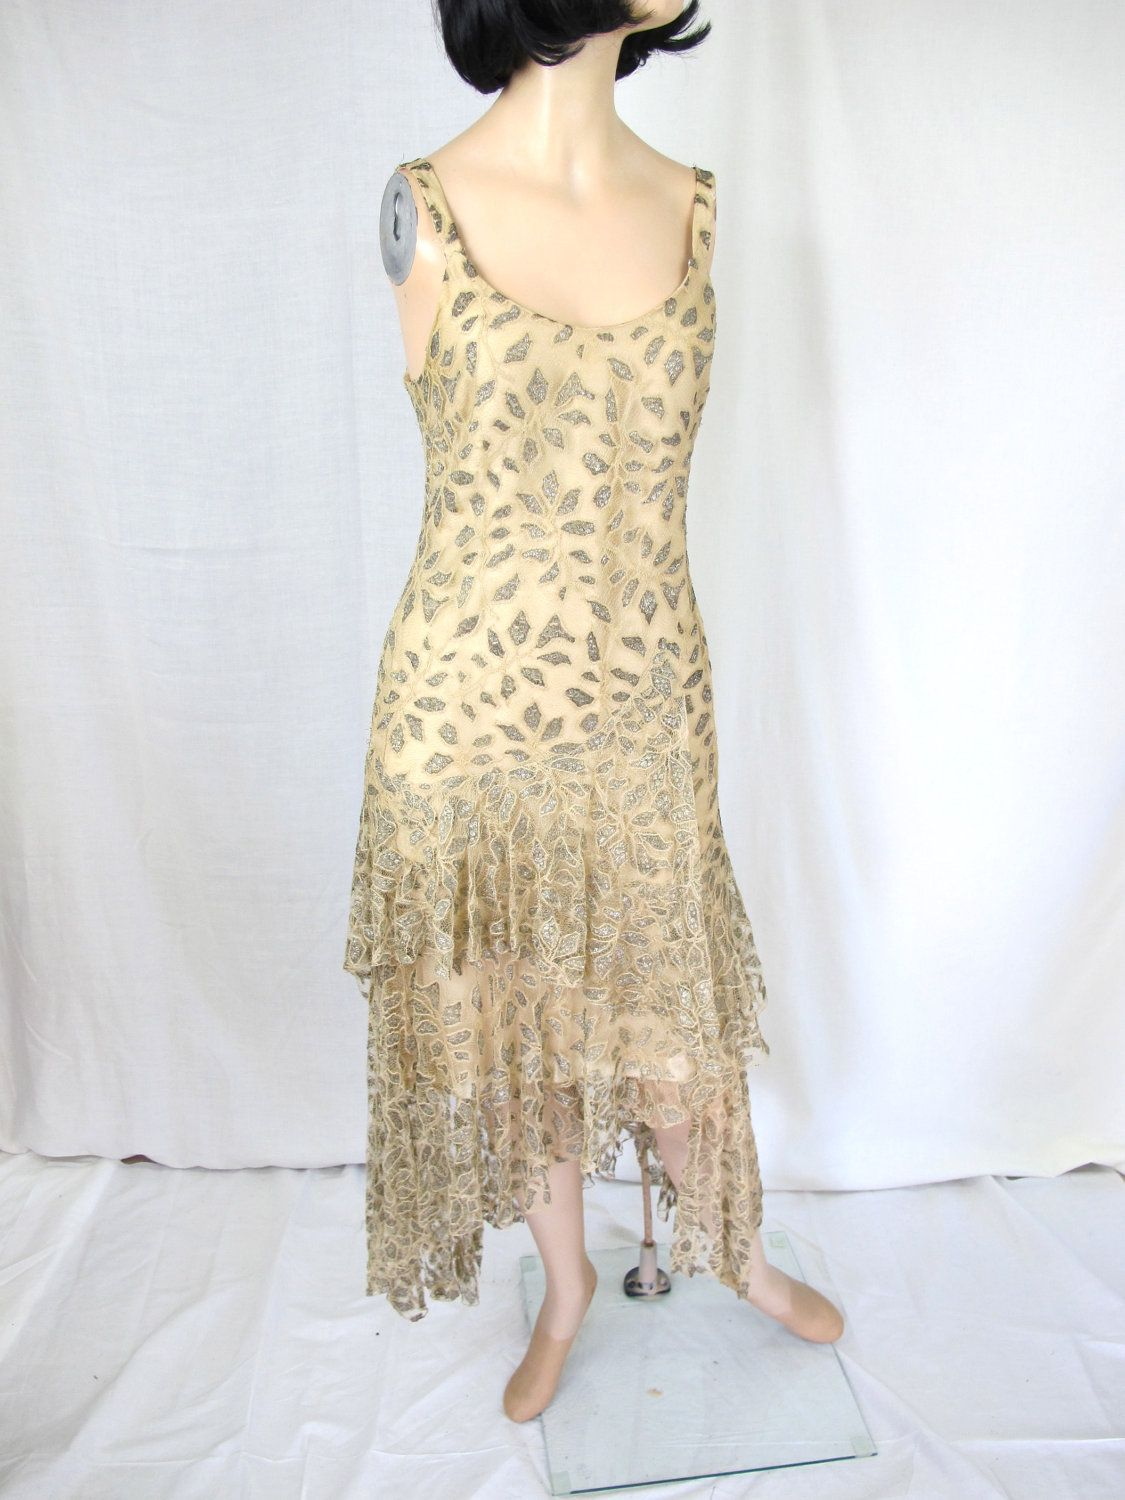 Cream dresses for weddings  ON DEPOSITs Stunning Cream Nude and GoldSilver Lace Flapper